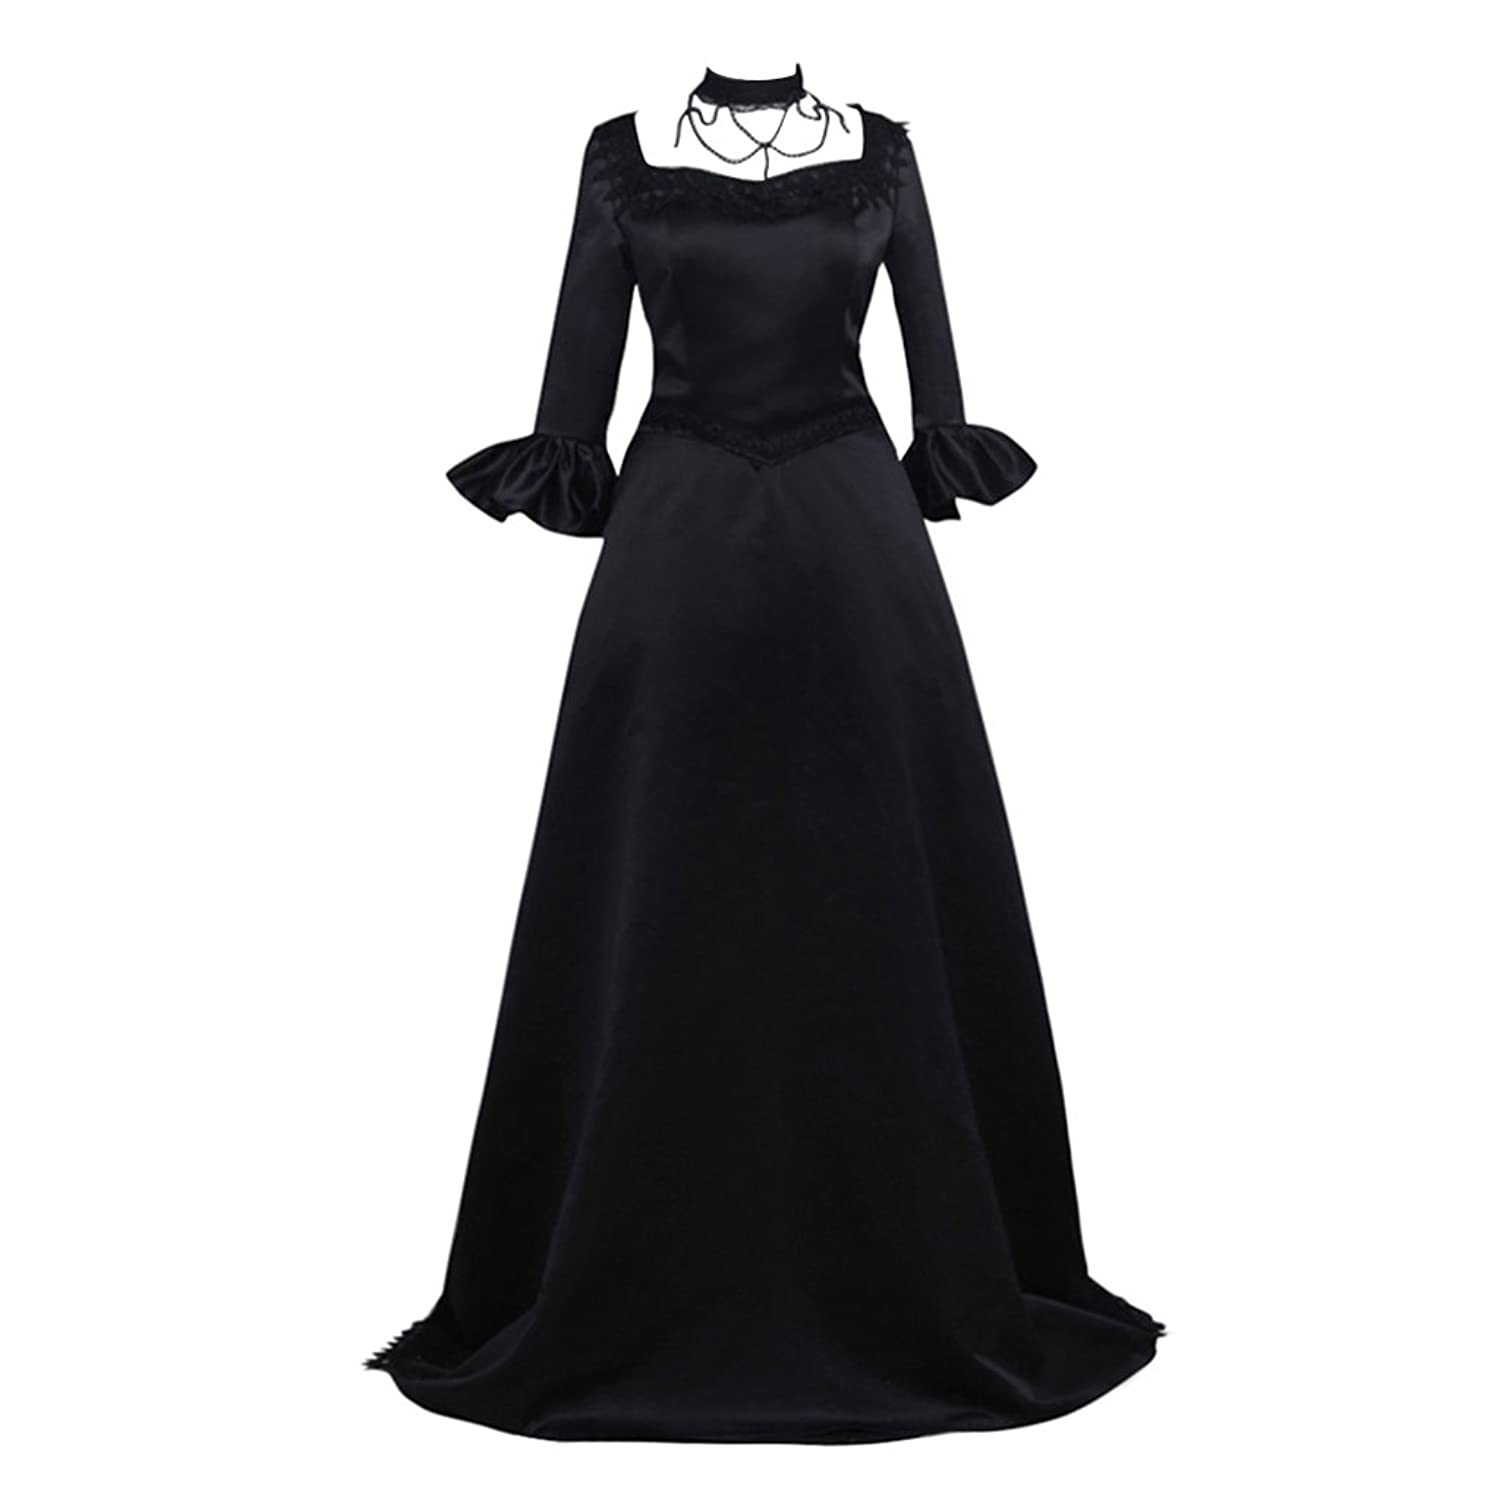 Cosplayitem Women Medieval Dress Rococo Victorian Dress Lace Decoration Fancy Dress Ball Gown Black